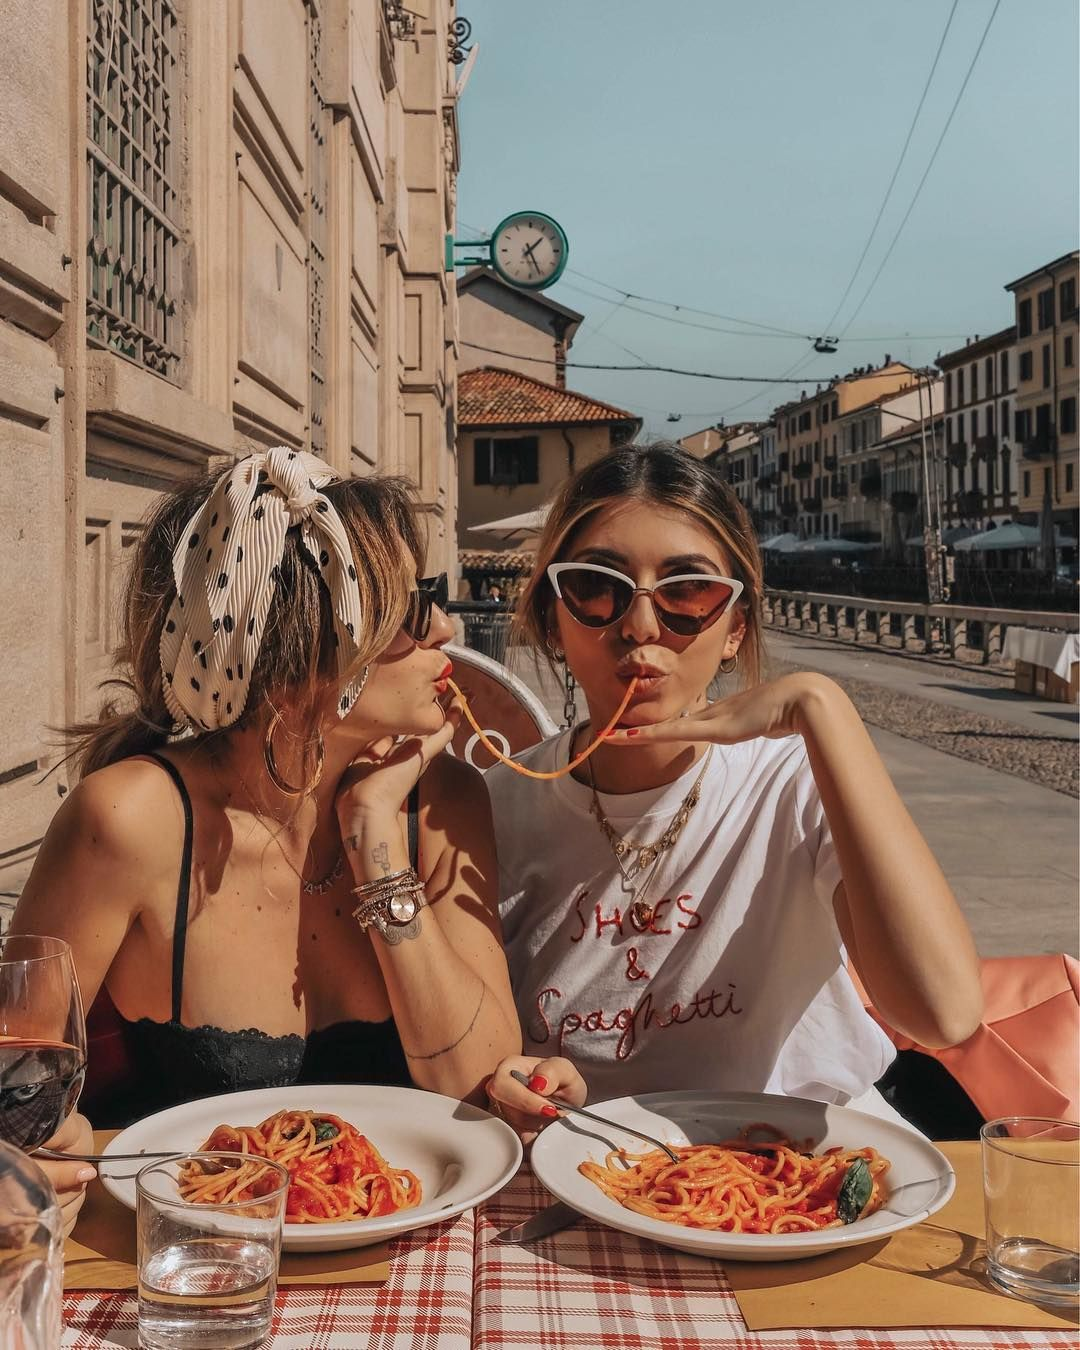 """Photo of Alice's Instagram profile post: """"Italian Vibes ?? Spaghetti are always a good Idea, better if shared with a friend ❤️ @aliceperrella"""""""